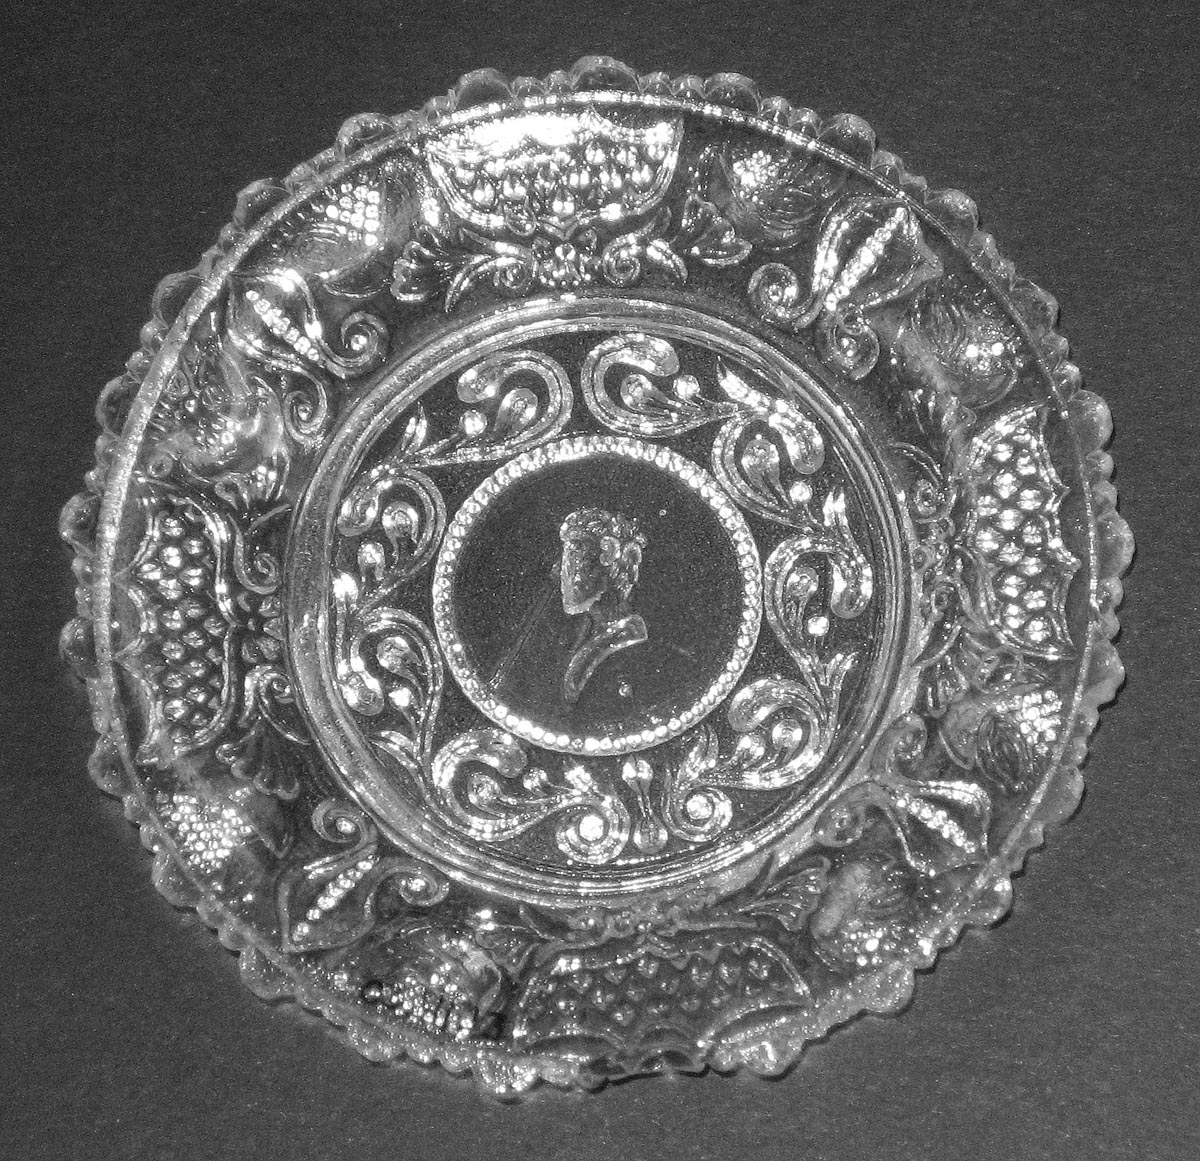 2003.0041.013 Glass cup plate